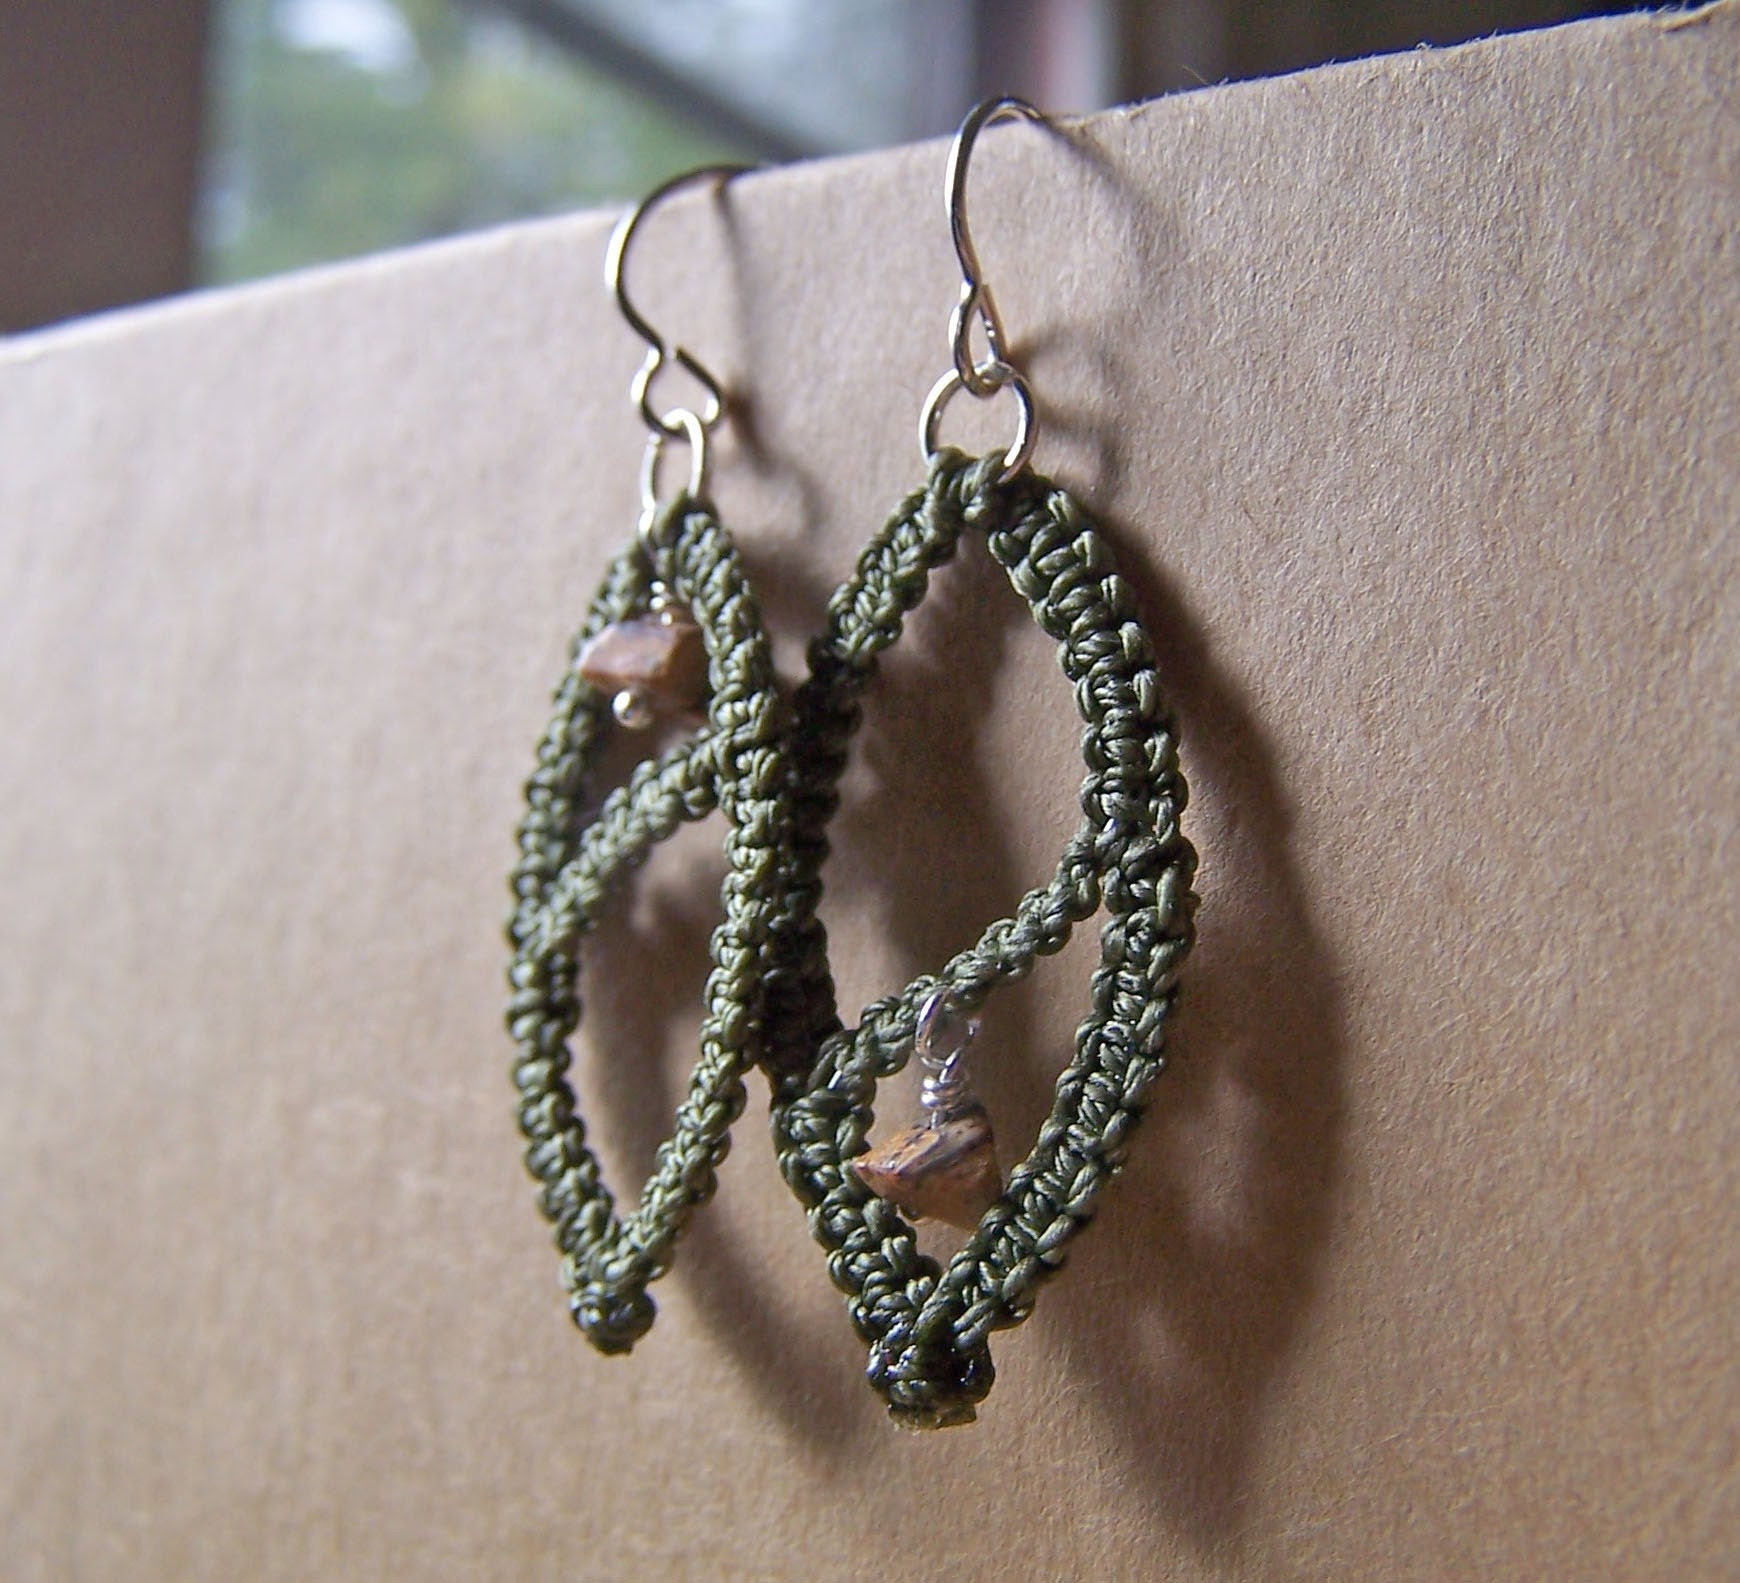 Curvature Demi Earrings in Olive